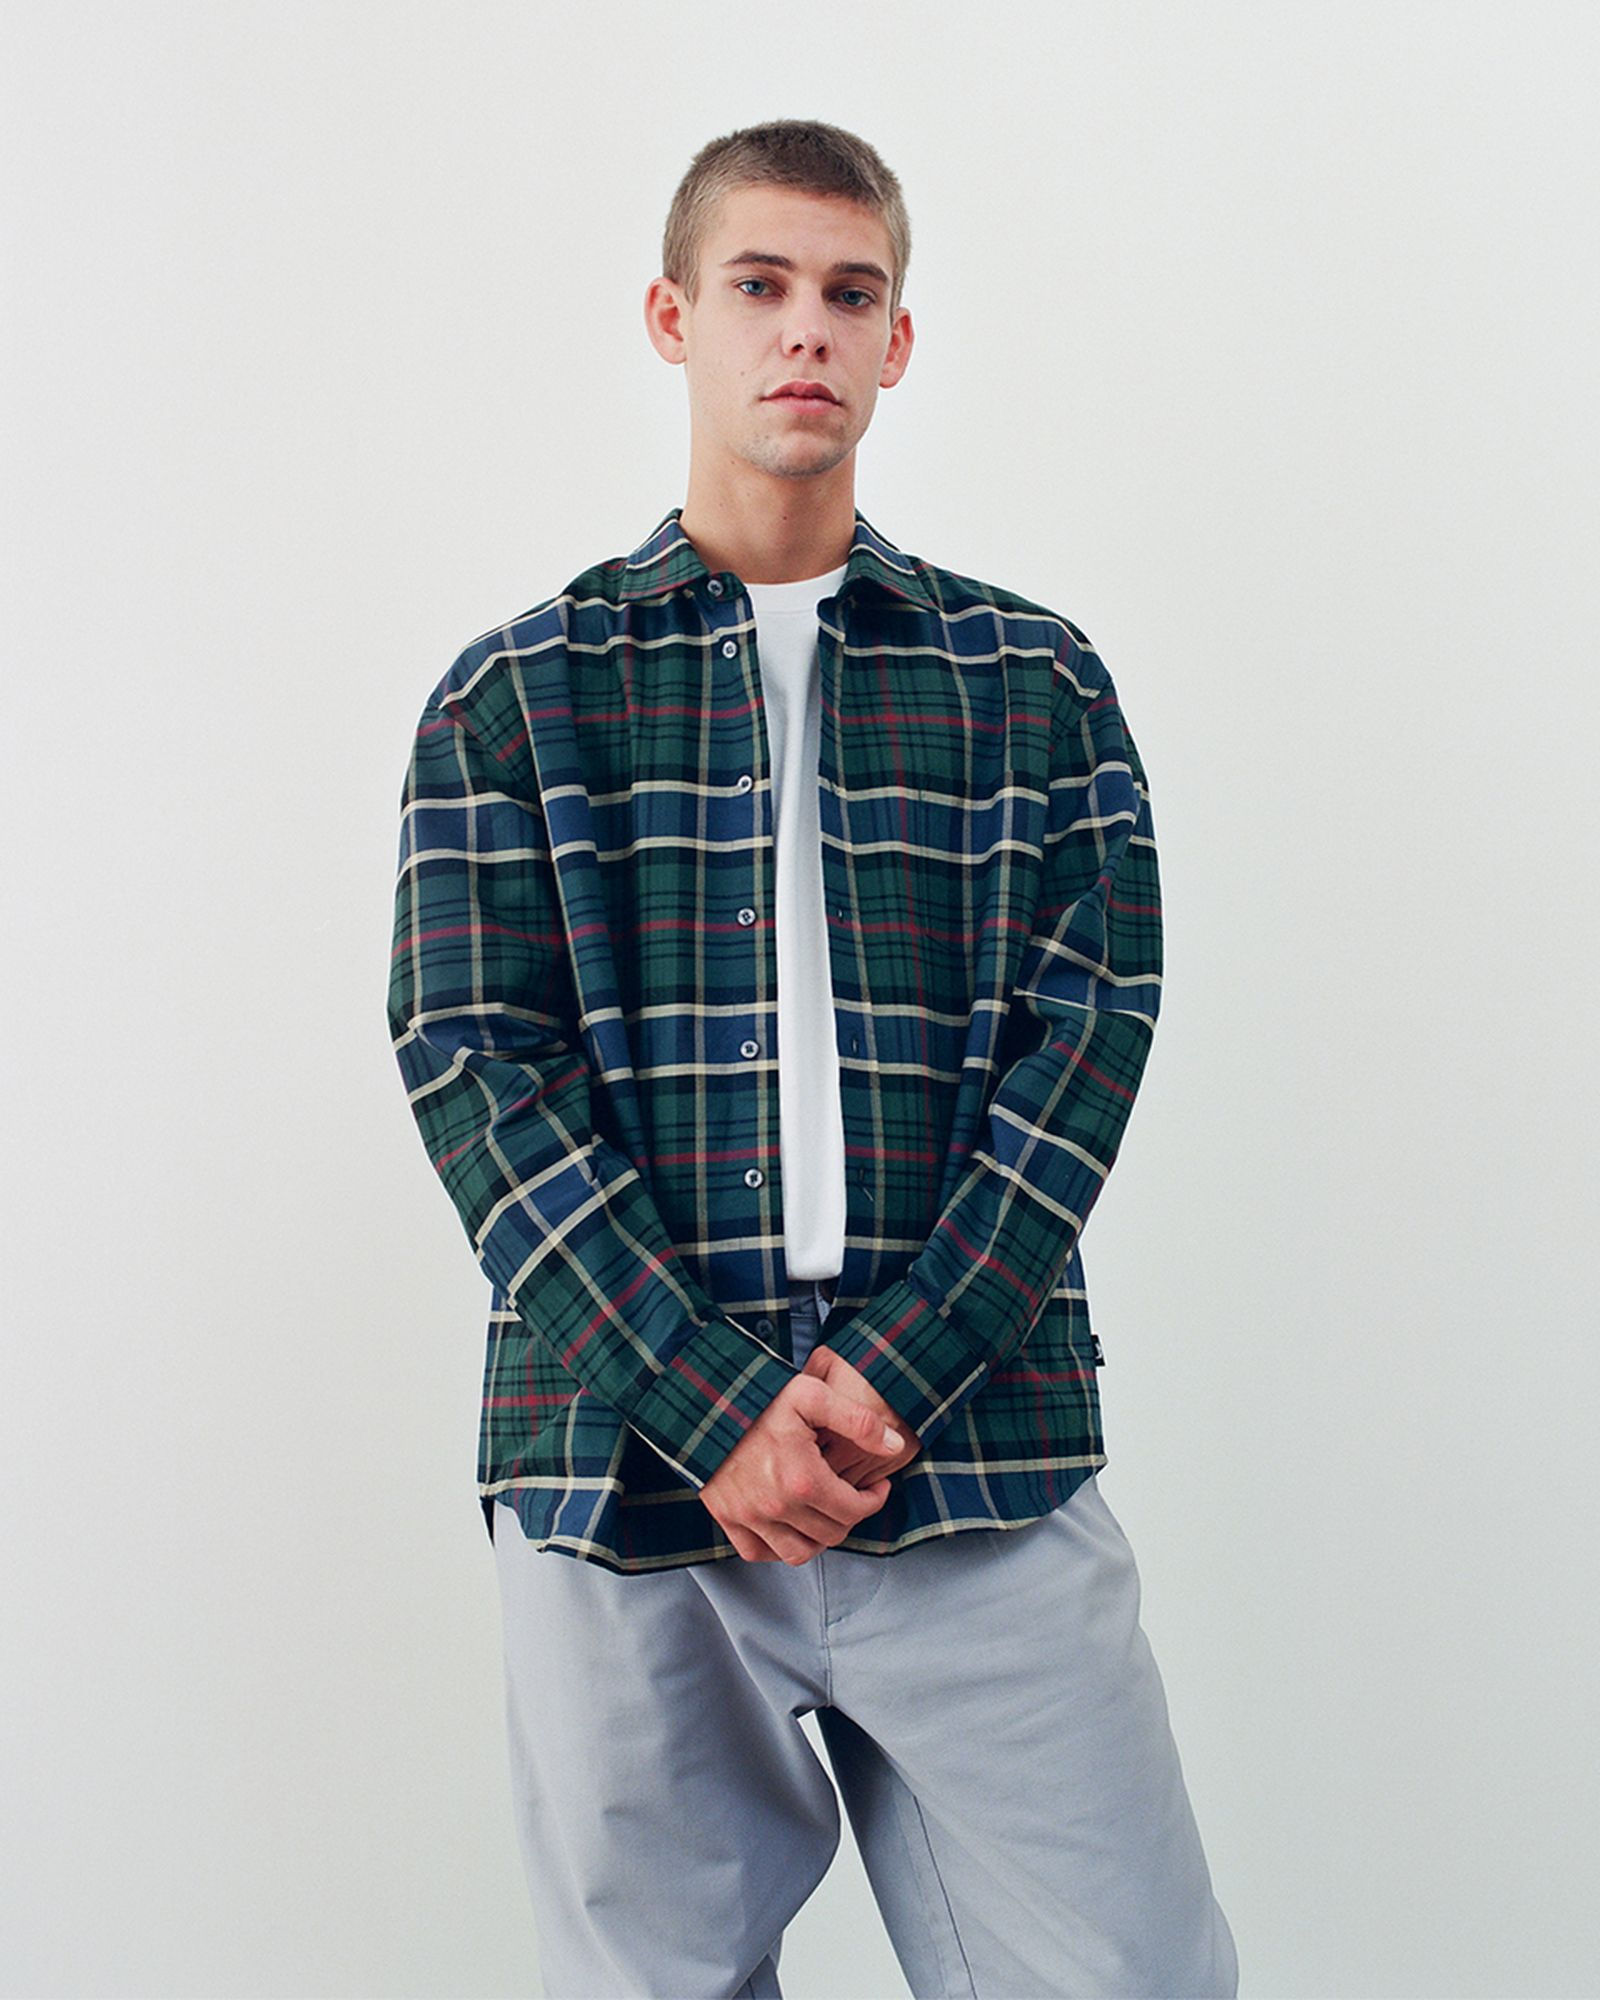 Stussy fall 2021 collection lookbook (6)